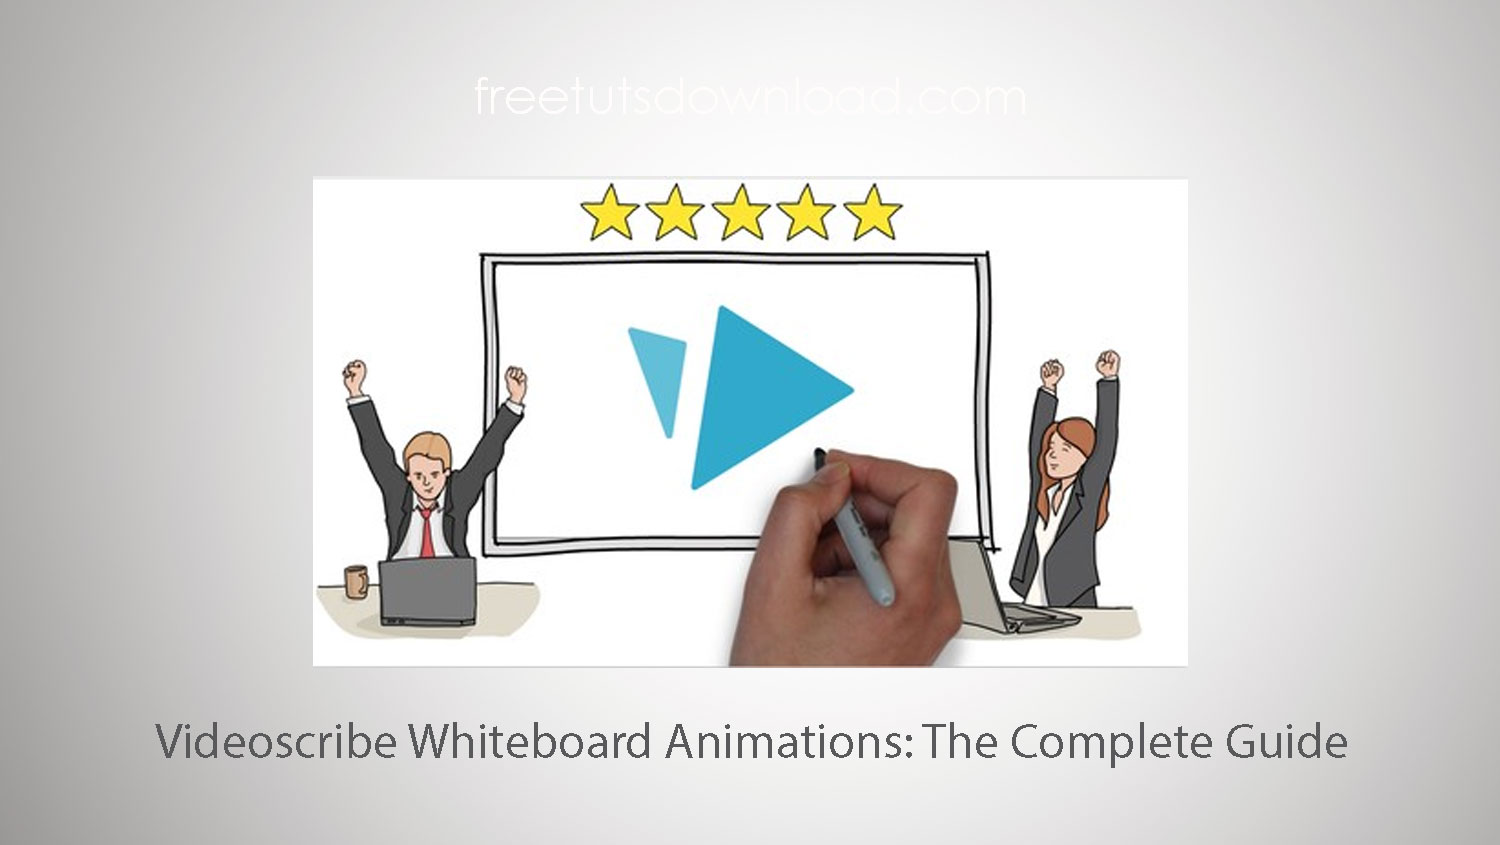 Videoscribe Whiteboard Animations: The Complete Guide